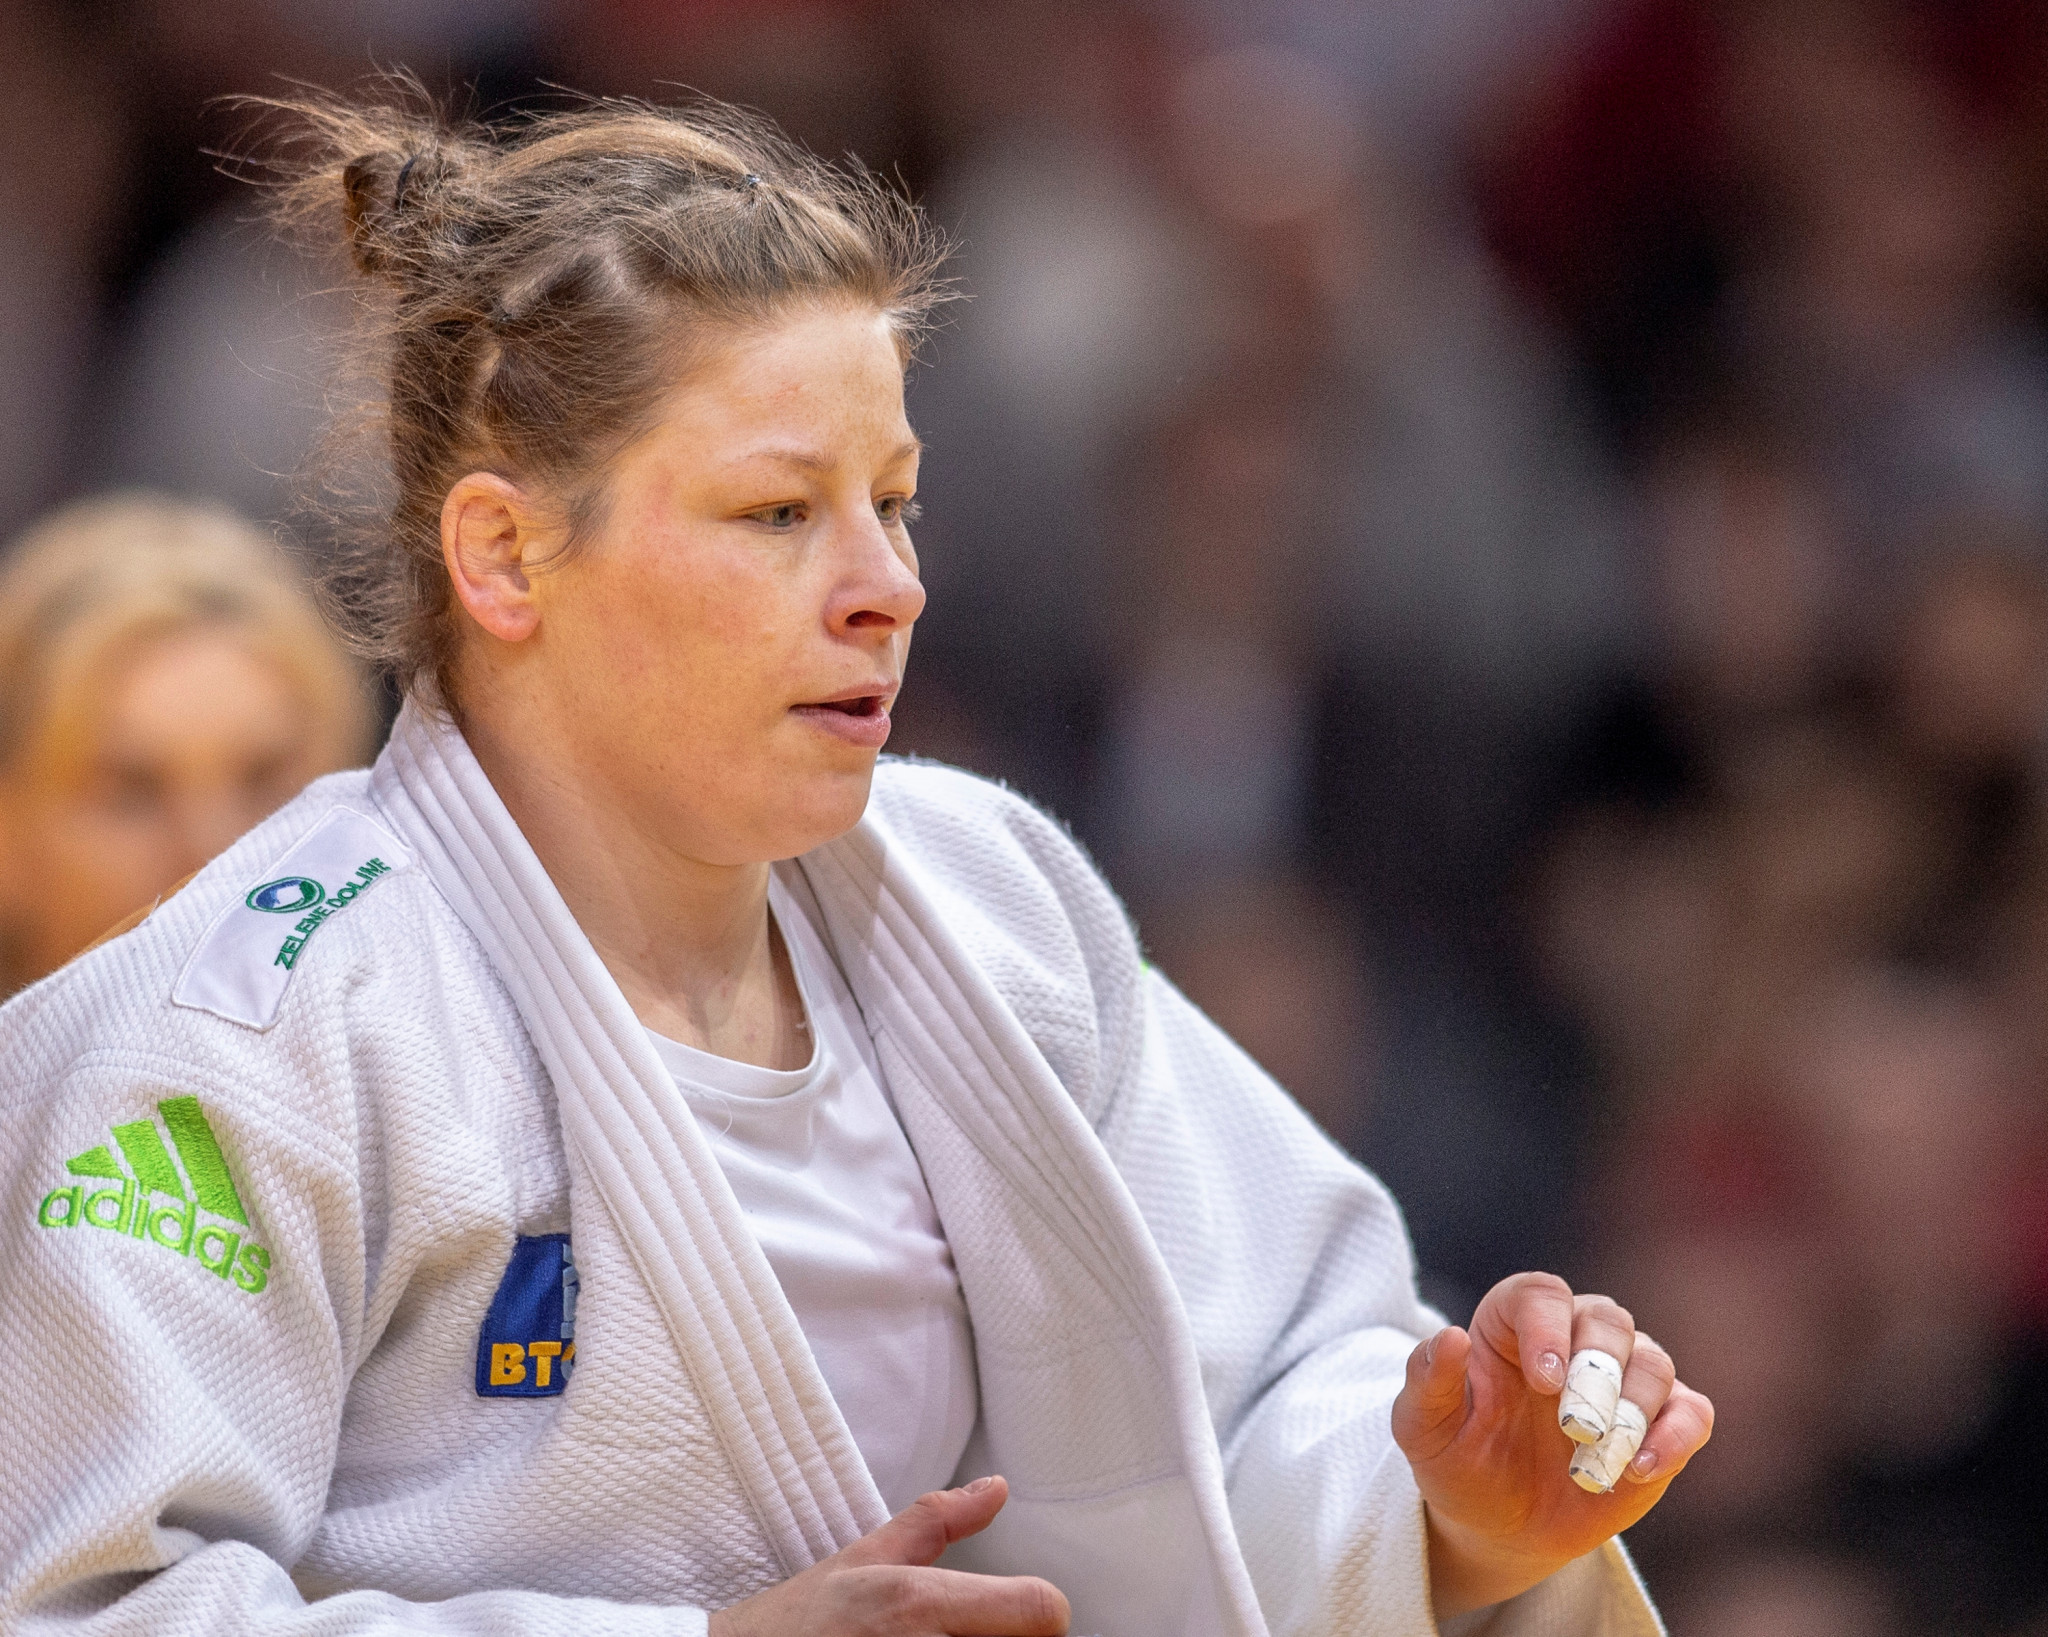 Tina Trstenjak won the women's under-63kg event ©Getty Images